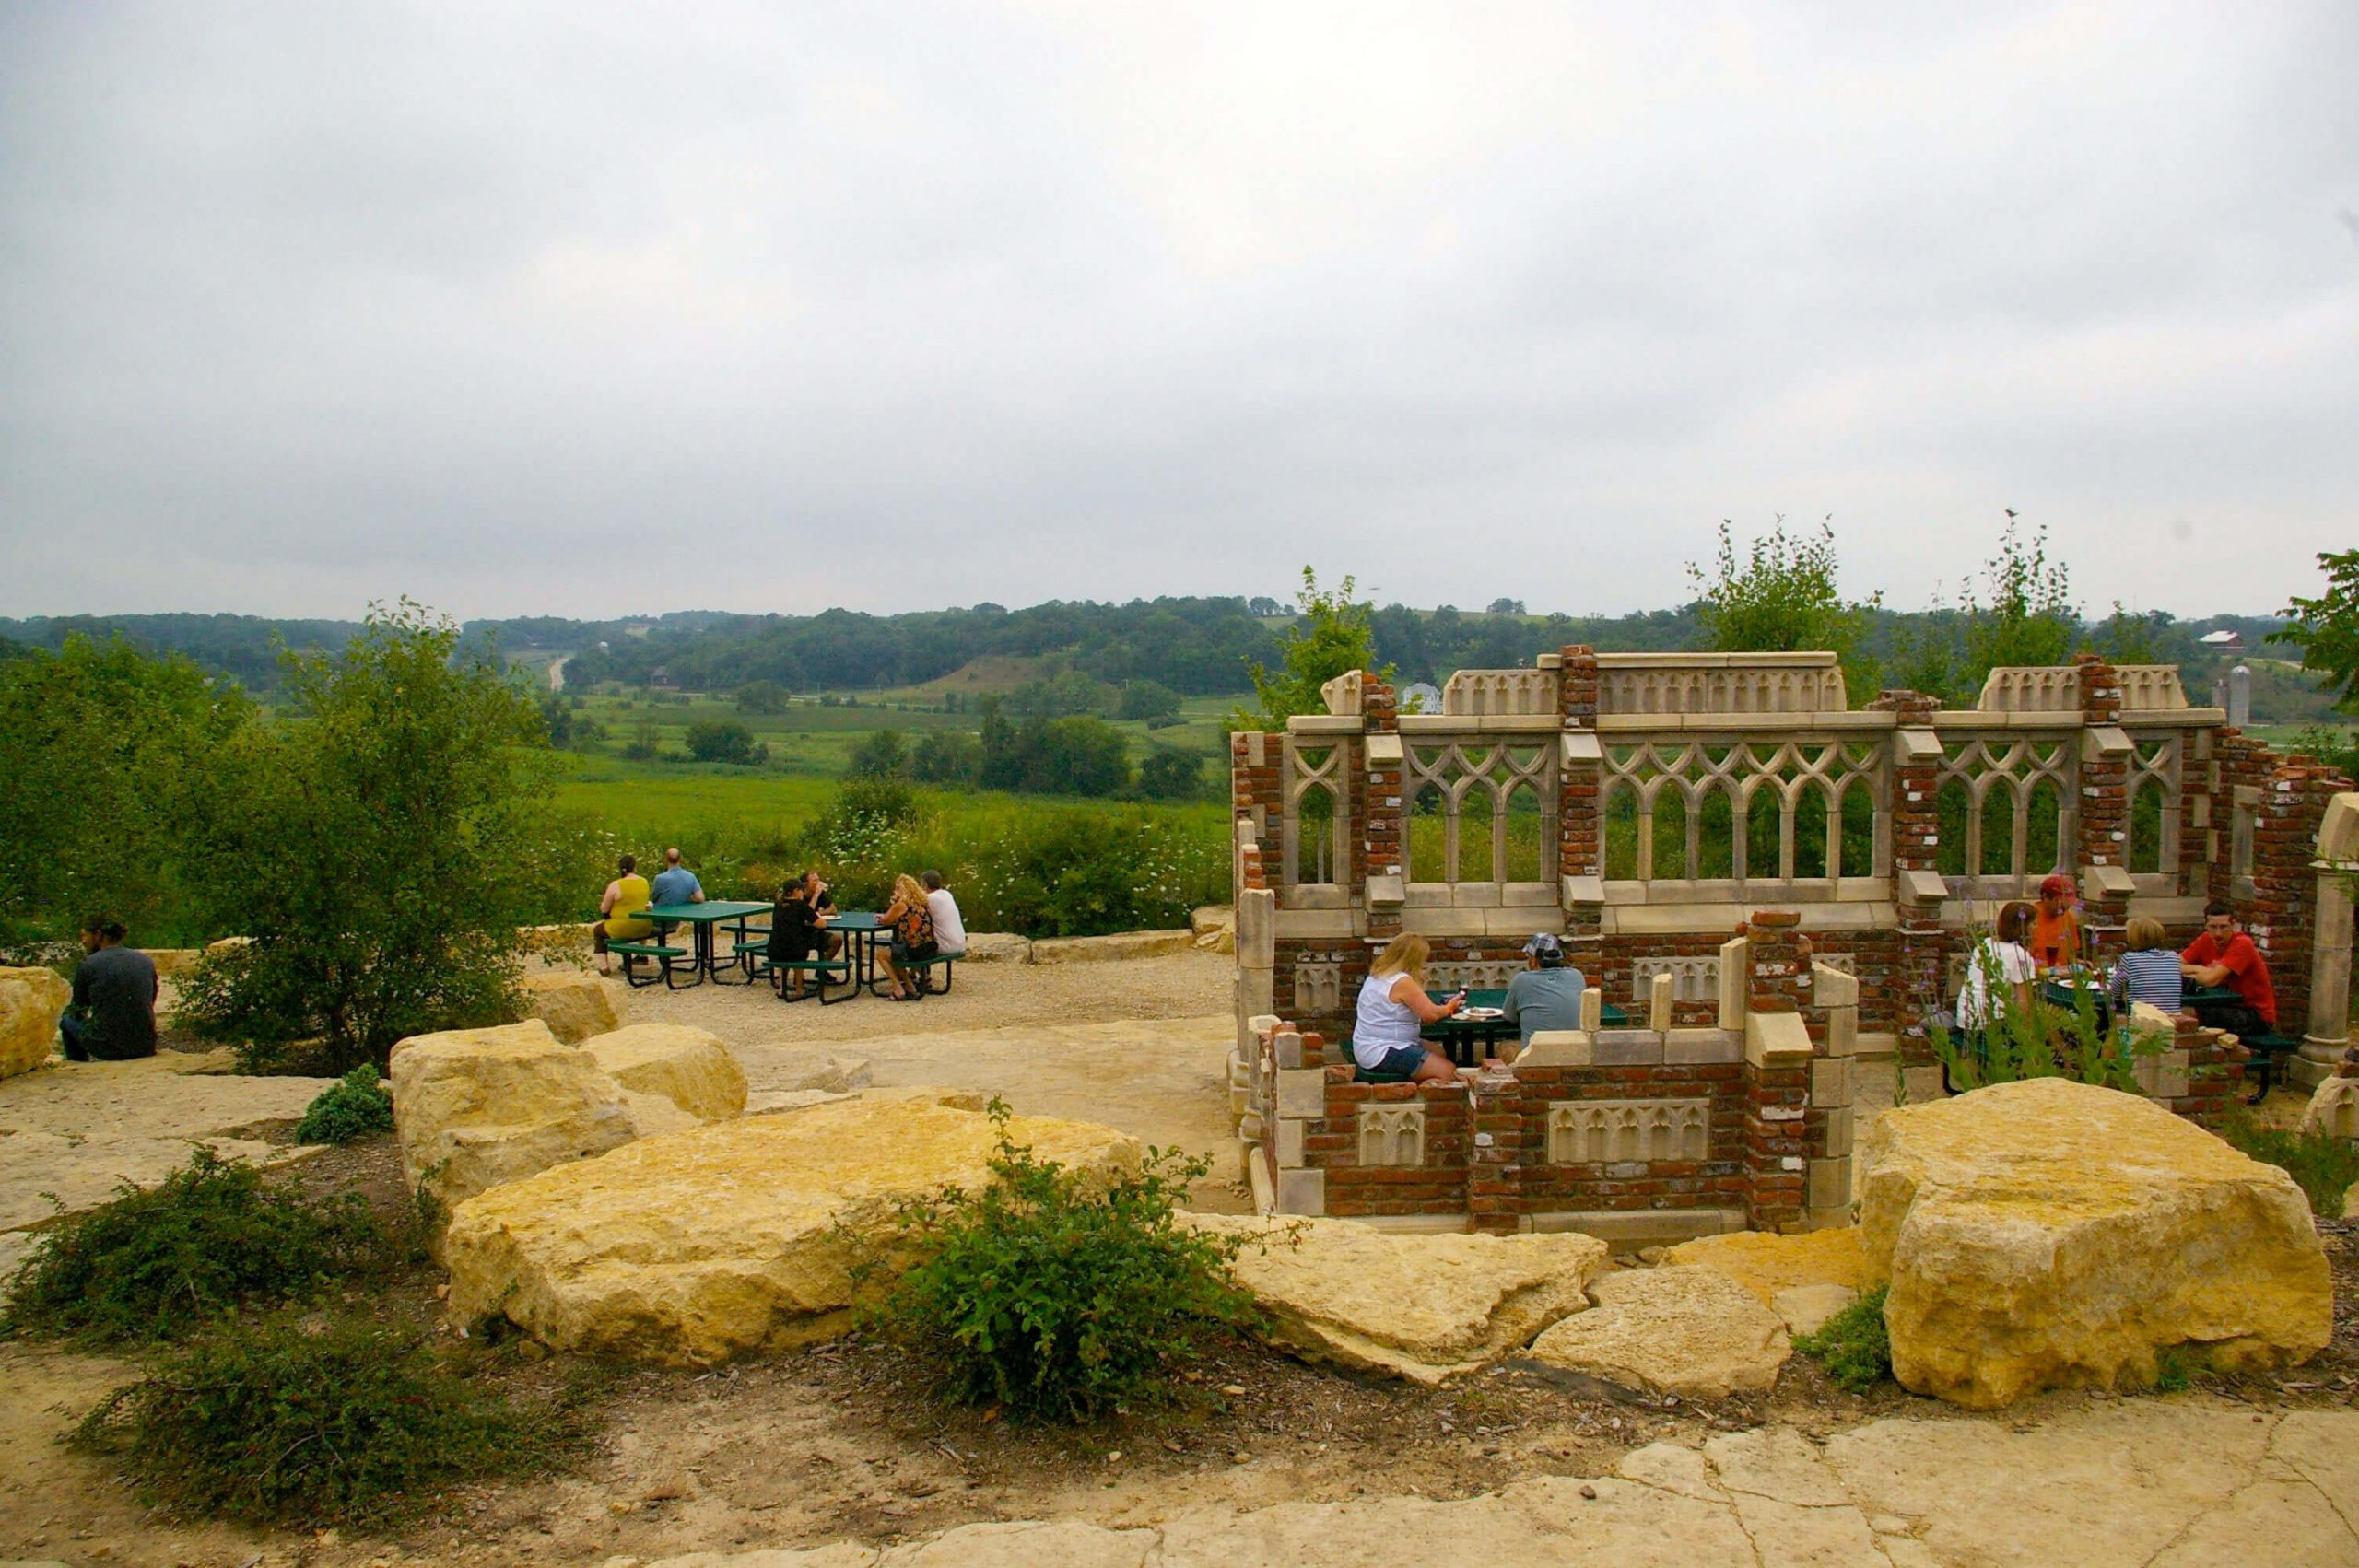 Outside in the patio area and ruins of New Glarus Brewing Company in New Glarus, Wisconsin